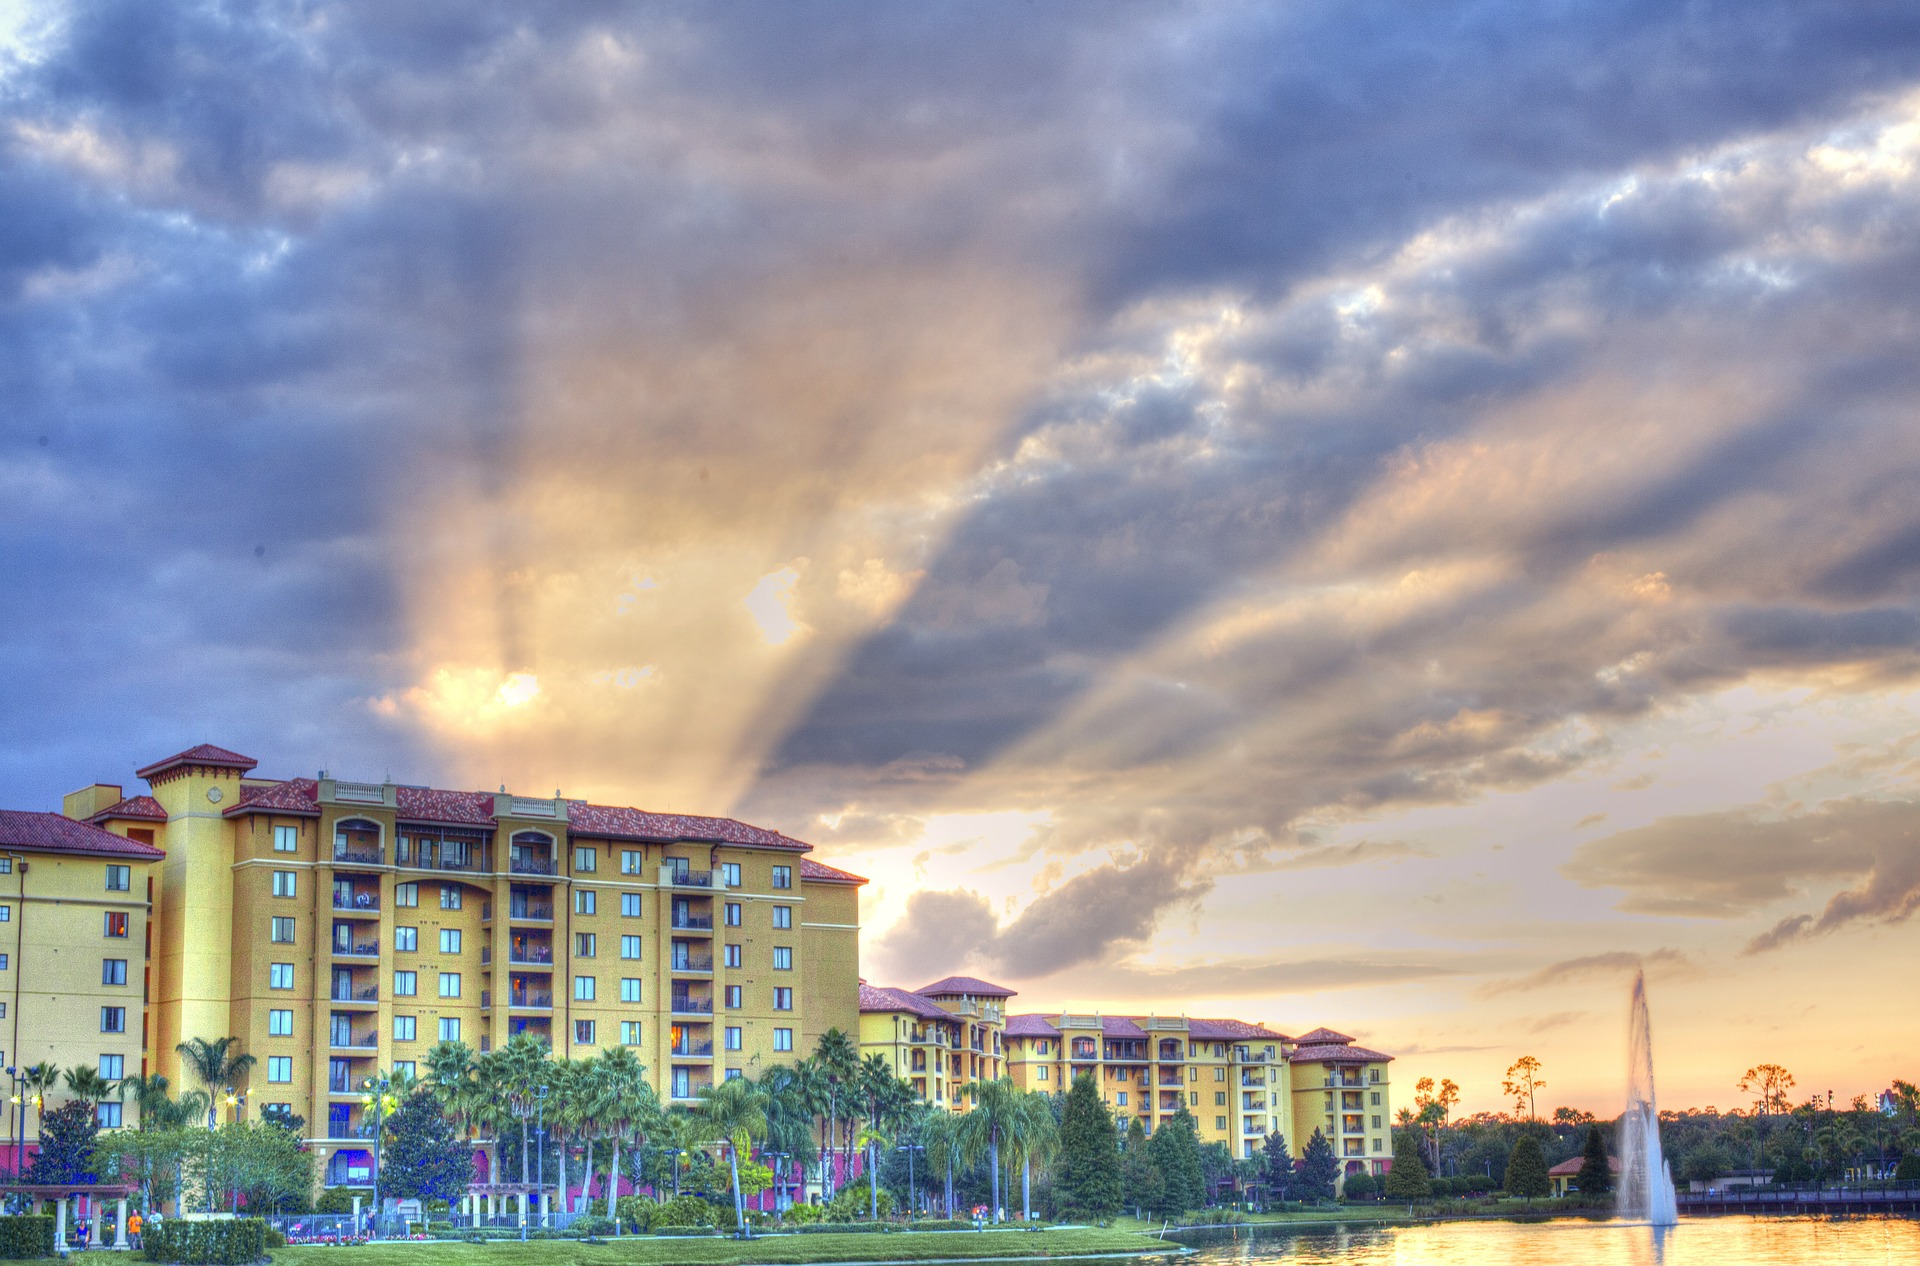 Orlando hotels and tourism